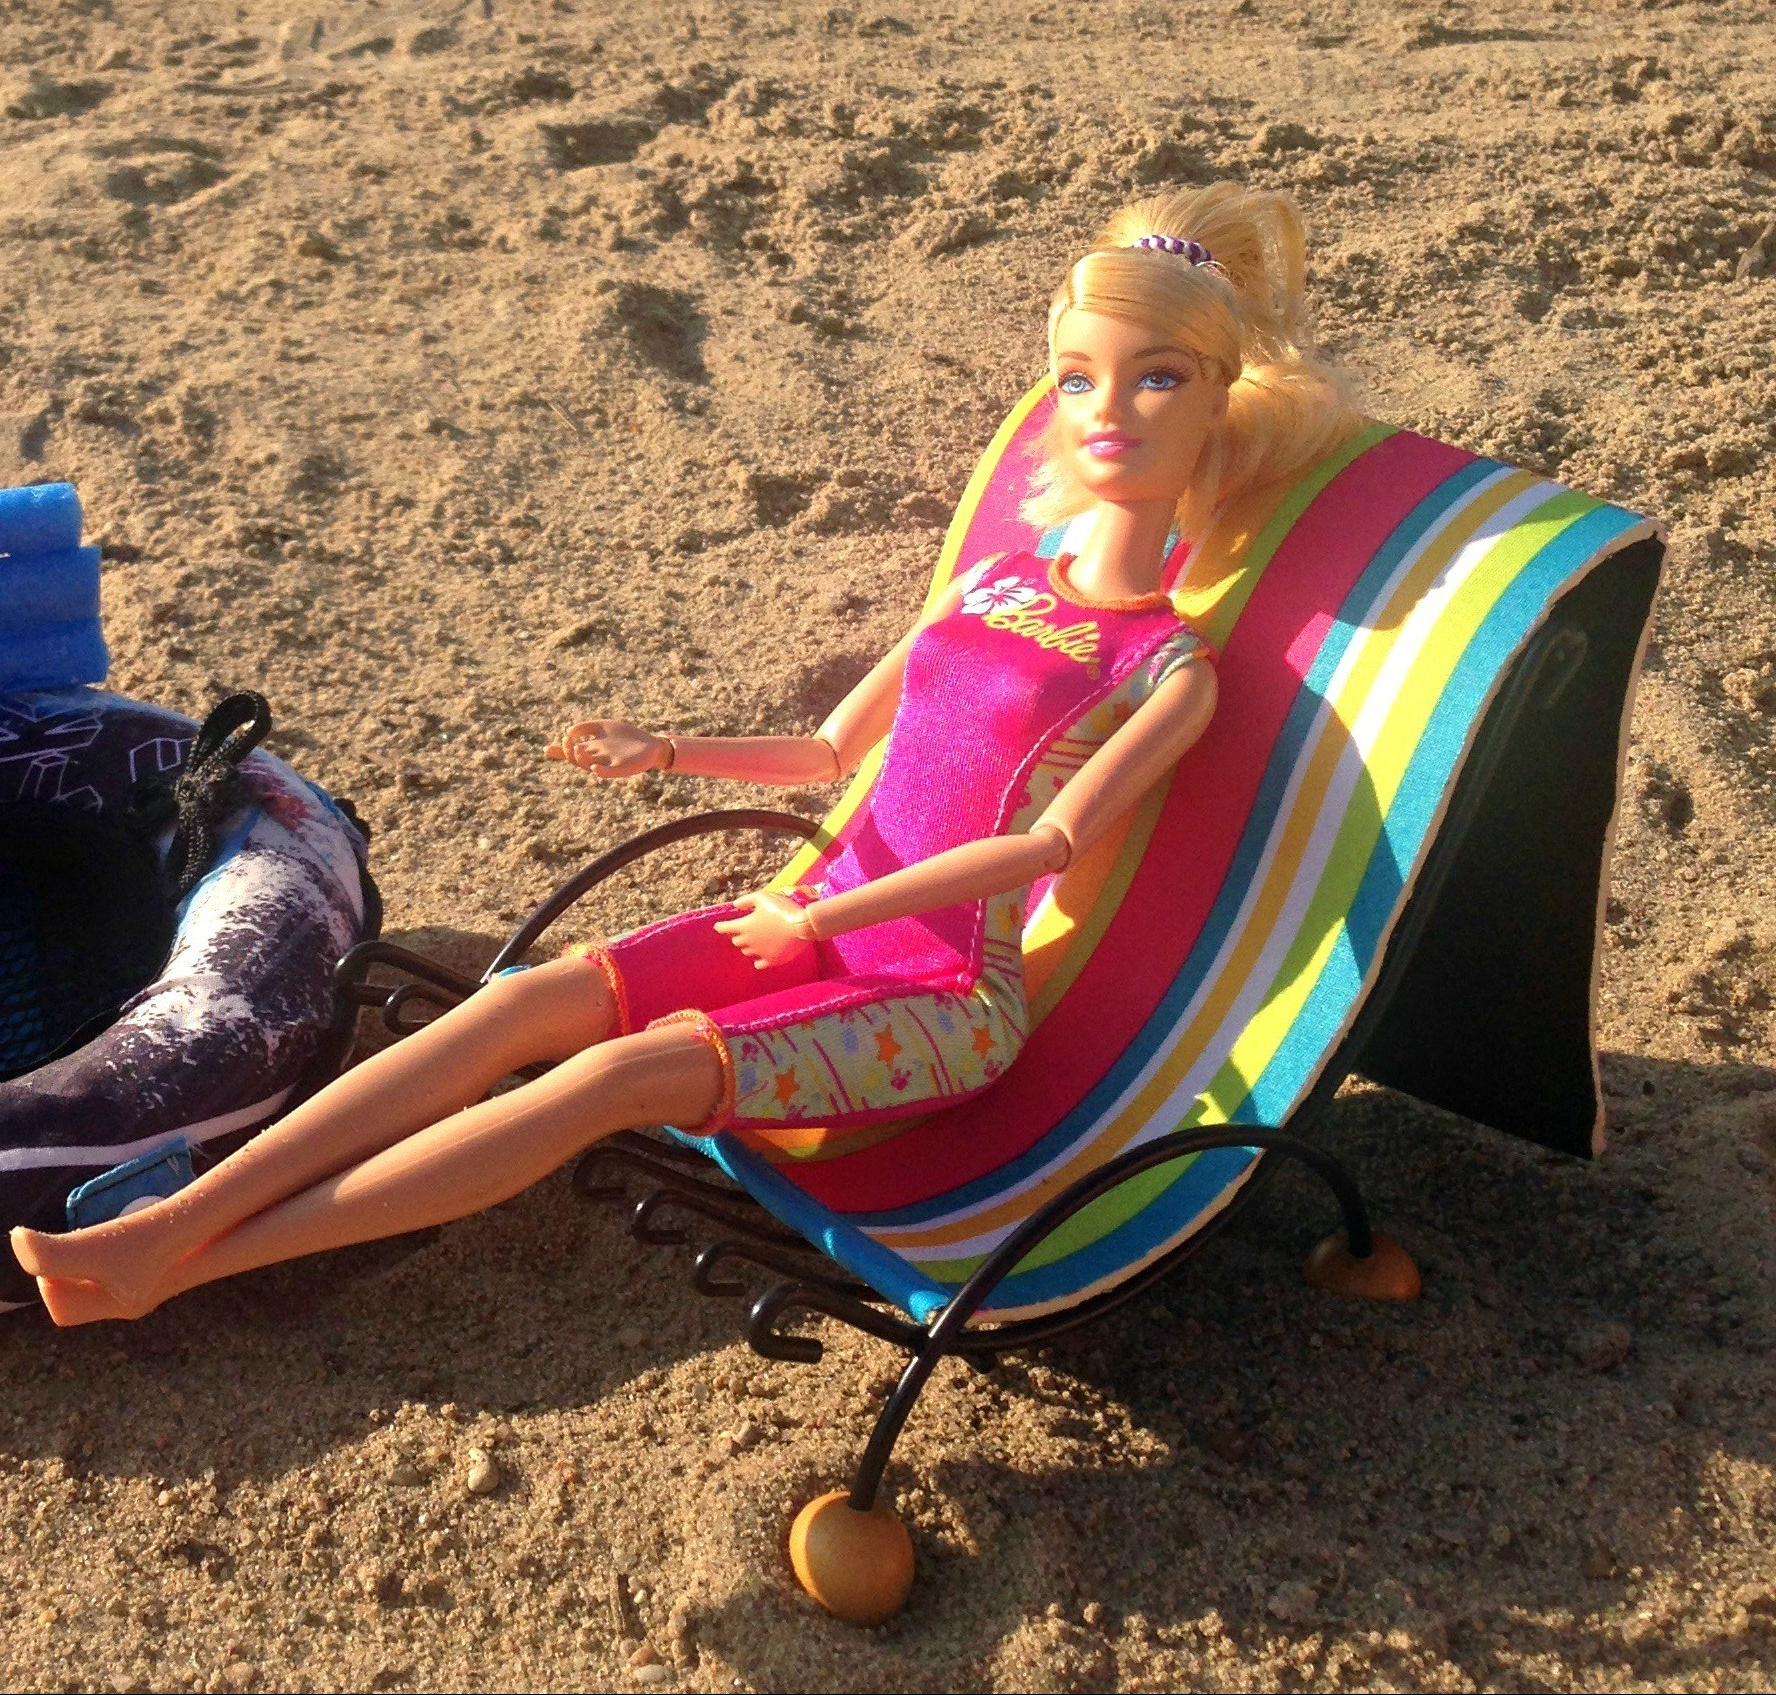 DIY Barbie Doll Beach Chair From Dish Rack and Tablet Case #barbie_doll #furniture #DIY #beach_chair #up-cycled #dolls #toys #Beach Starrcreative.ca